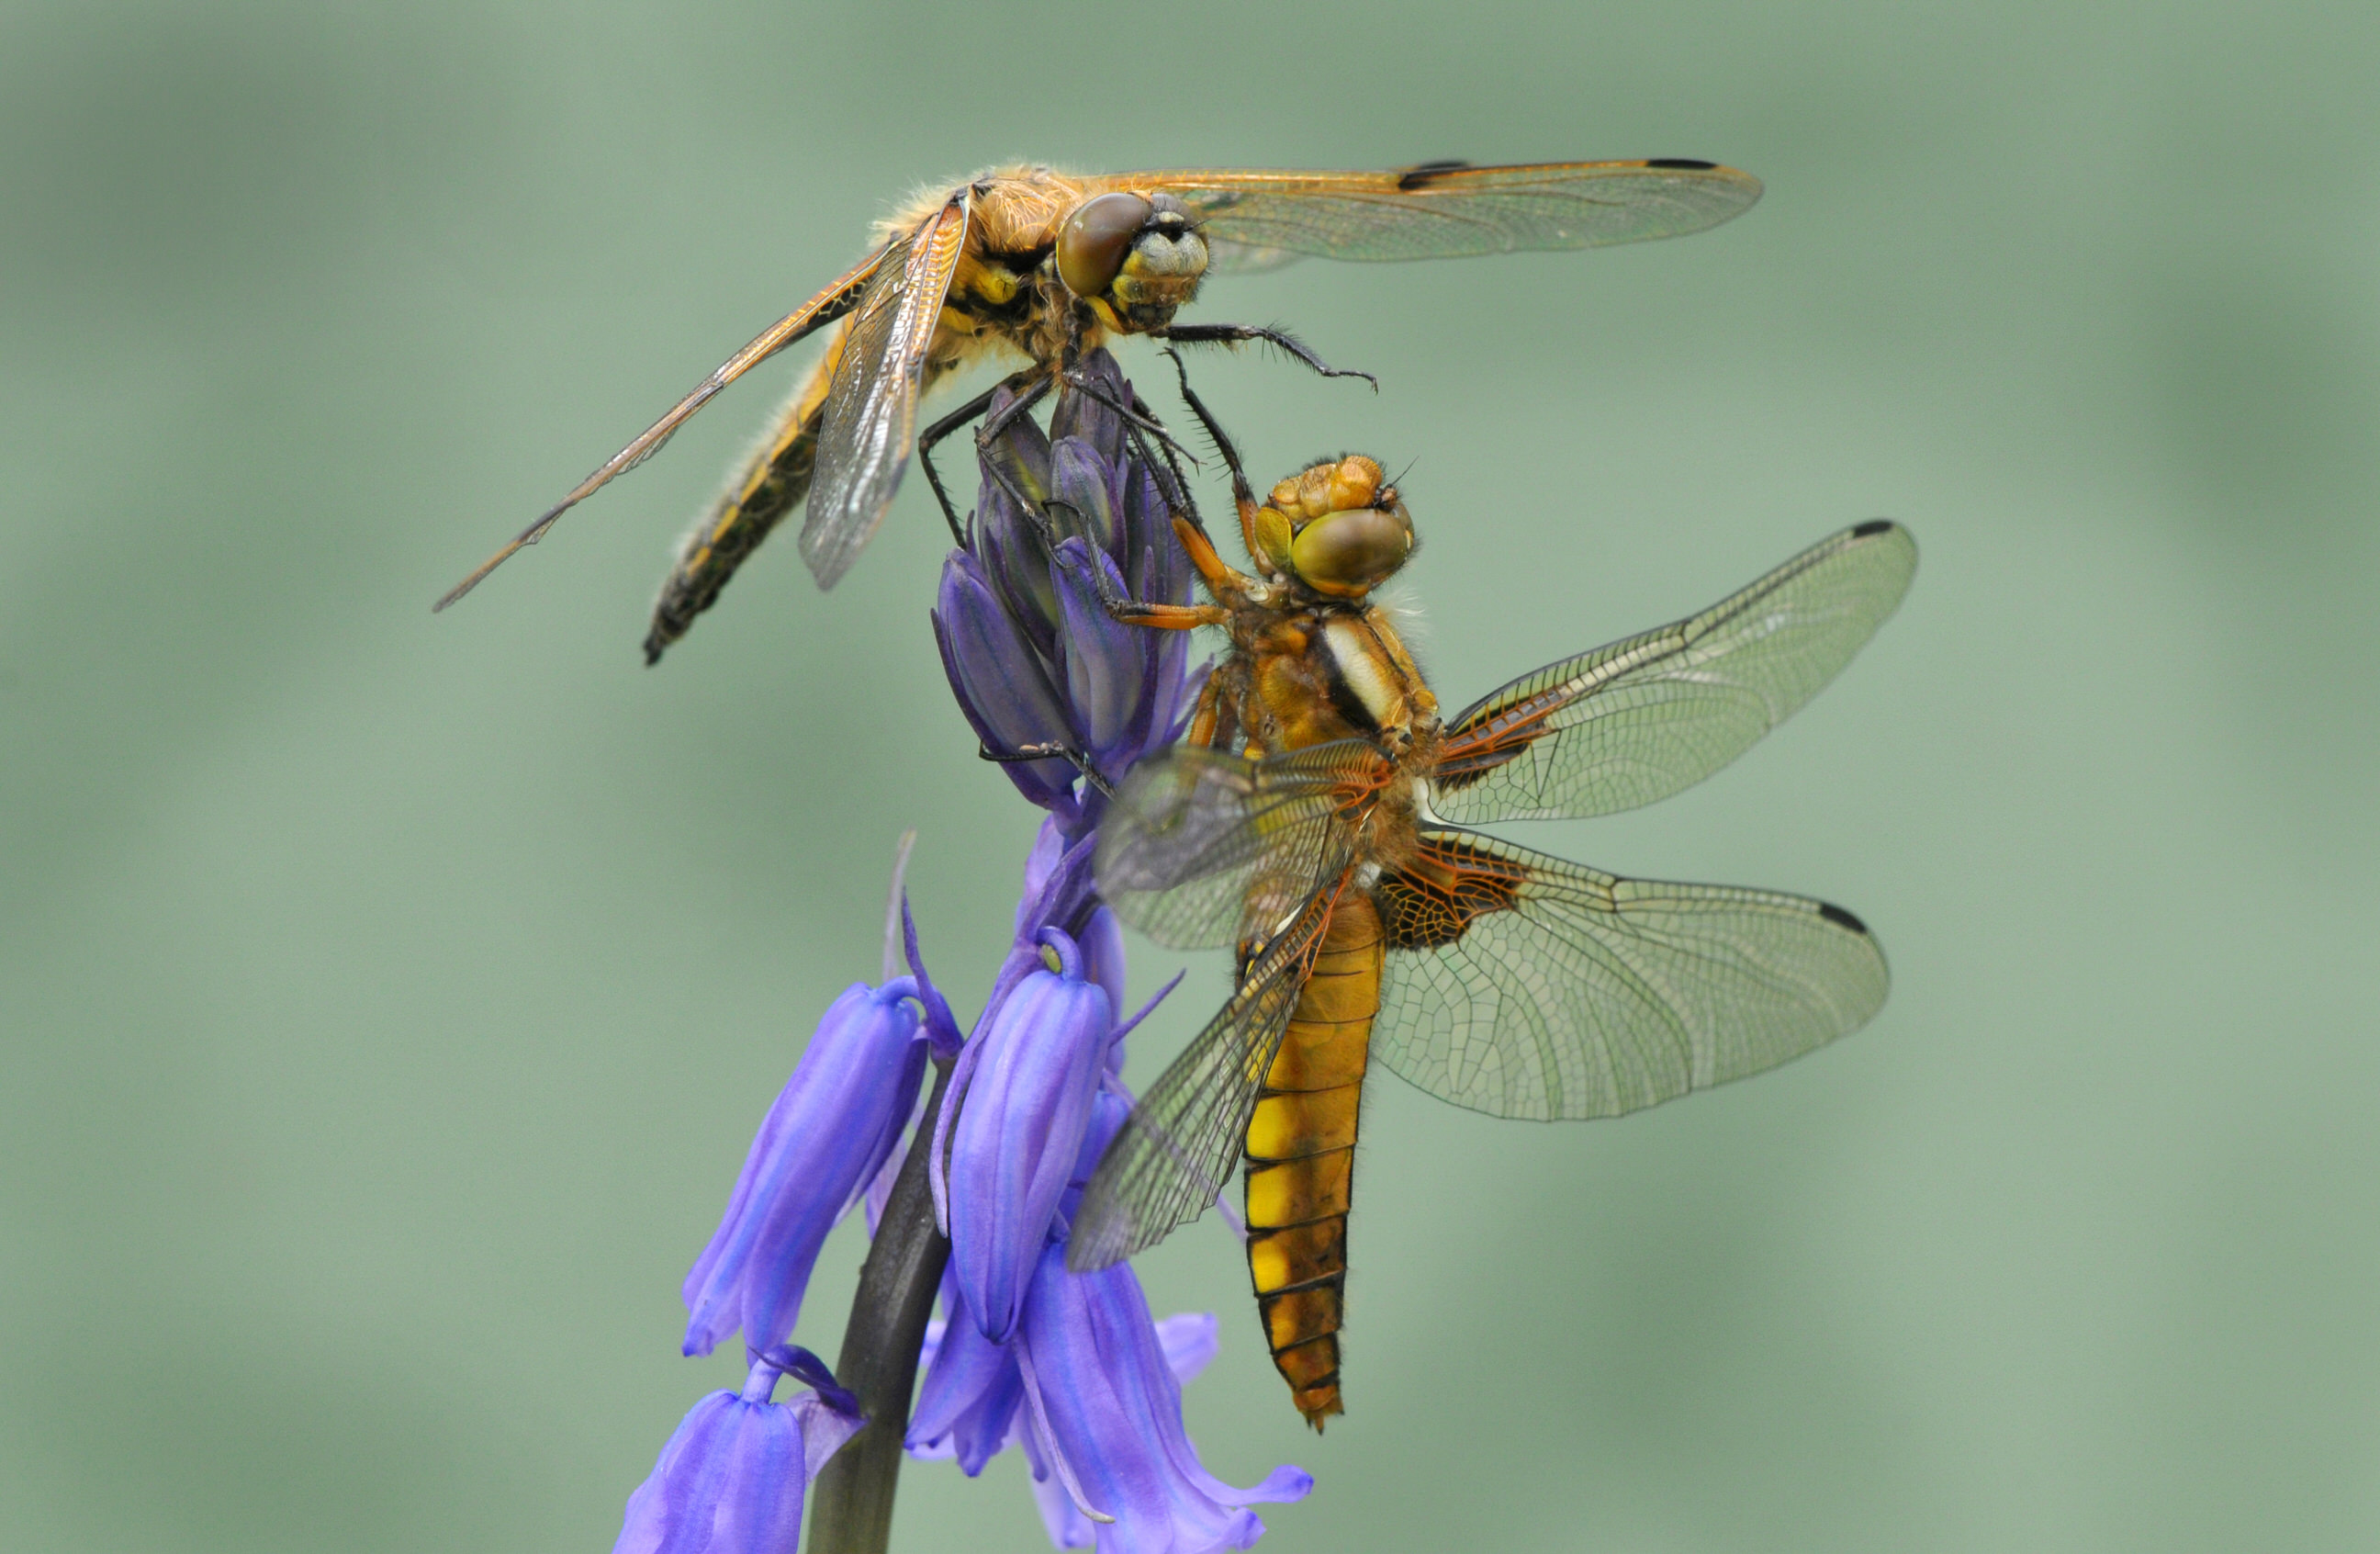 These two dragonflies of different chaser species were photographed on a (Spanish or hybrid) bluebell on a terrace in the photographer's garden, where they had emerged from a large garden pond.